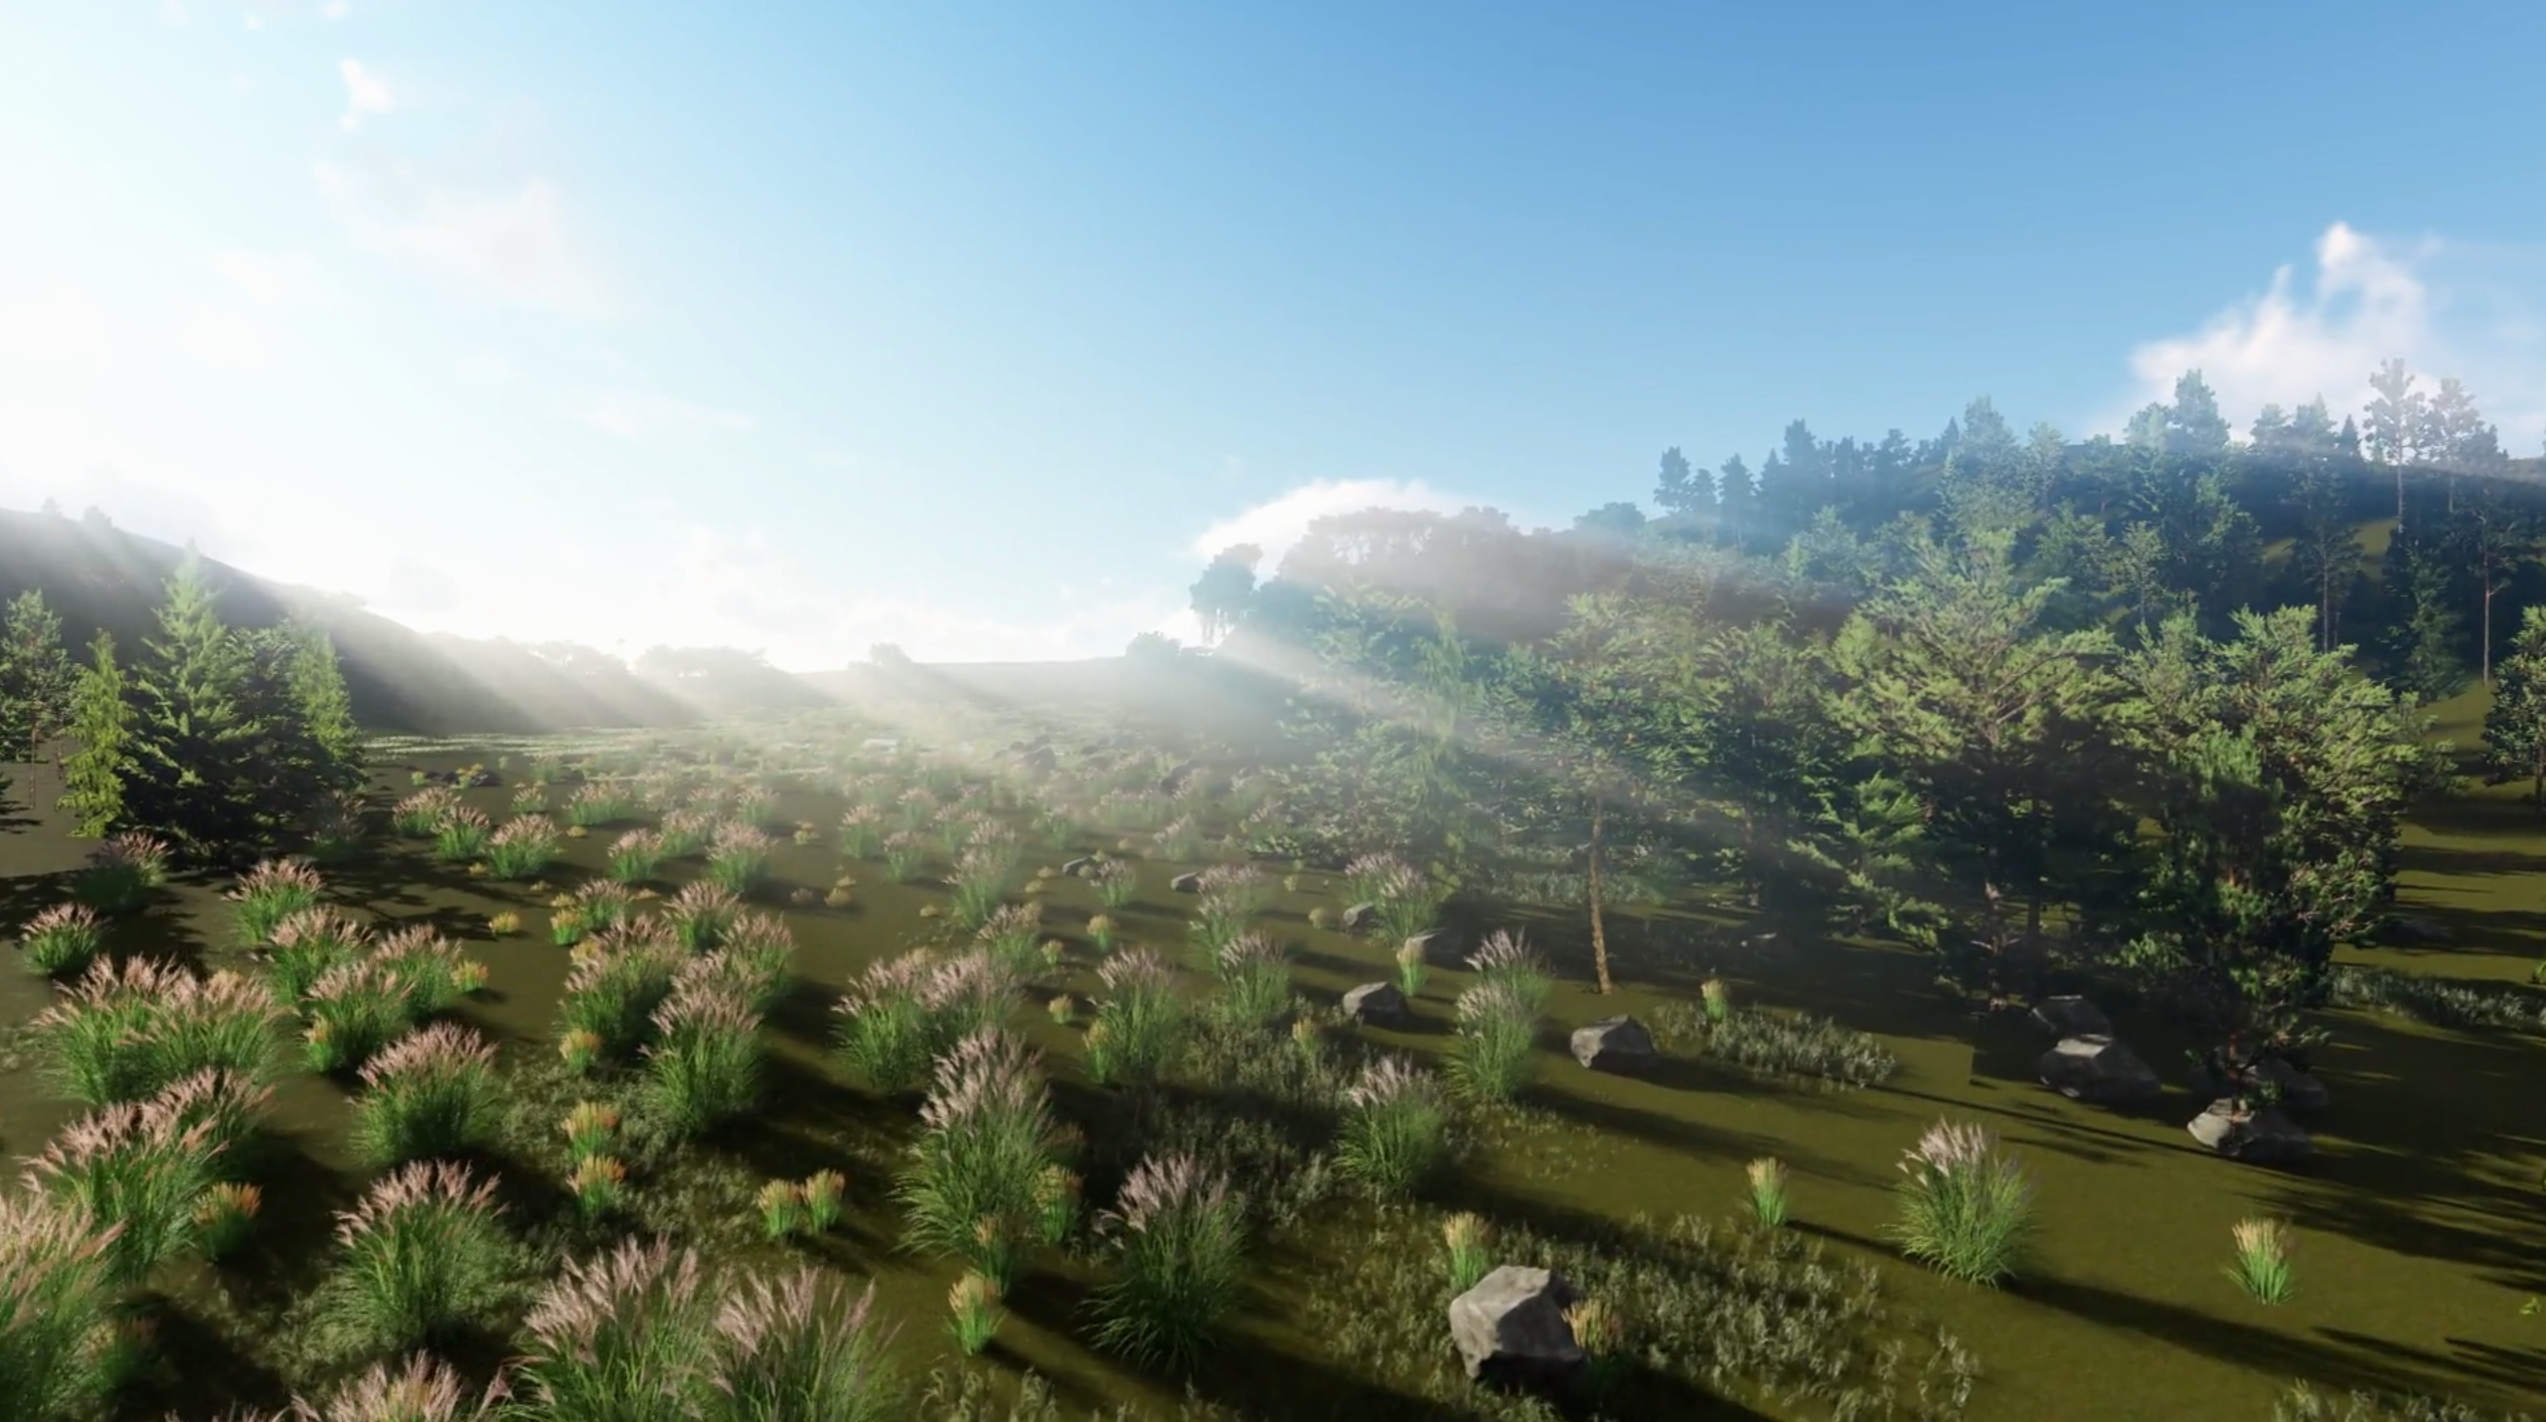 A digital render of green hills with plants and trees scattered across the scene